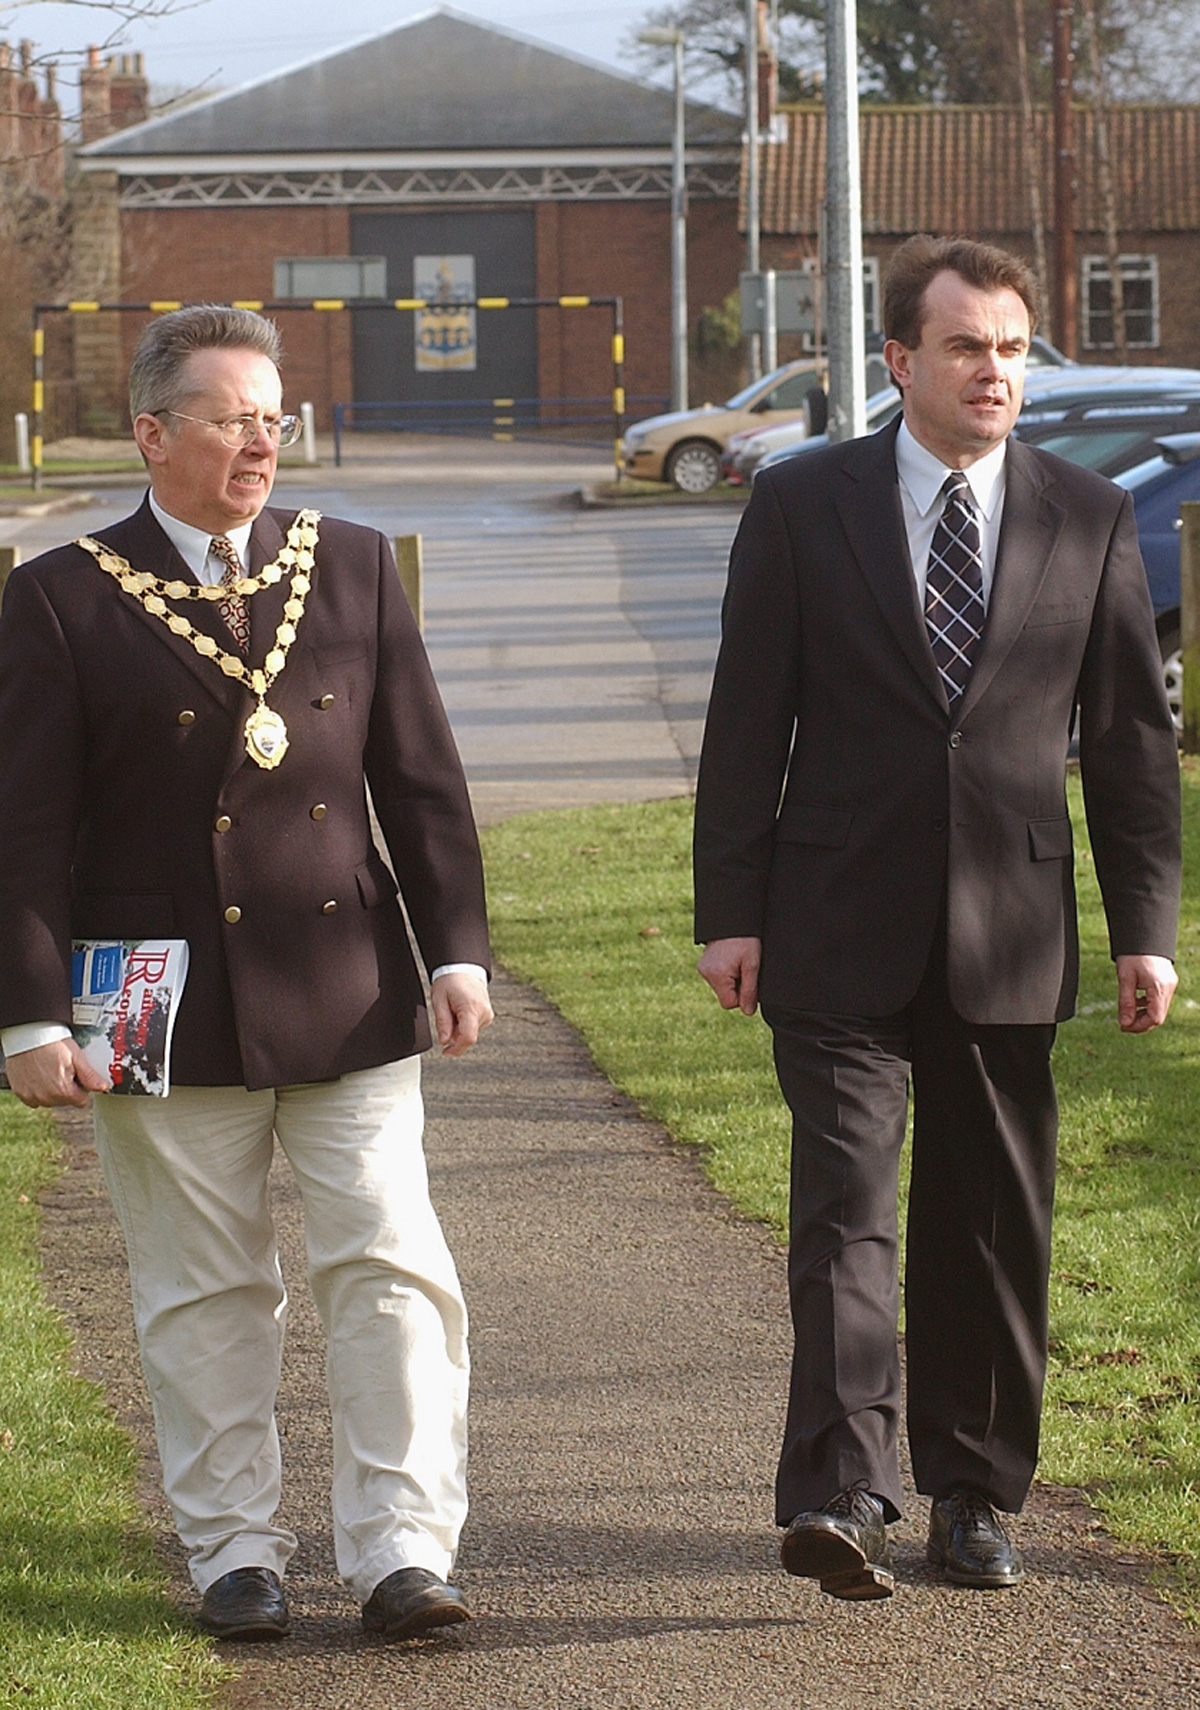 FLASHBACK: February 2004 and George McManus, the then mayor of Pocklington, with the founder of Minsters' Rail Campaign, Philip Taylor, on the old Pocklington-York rail line, part of the York-Hull line, with the Pocklington engine sheds in the backgroun